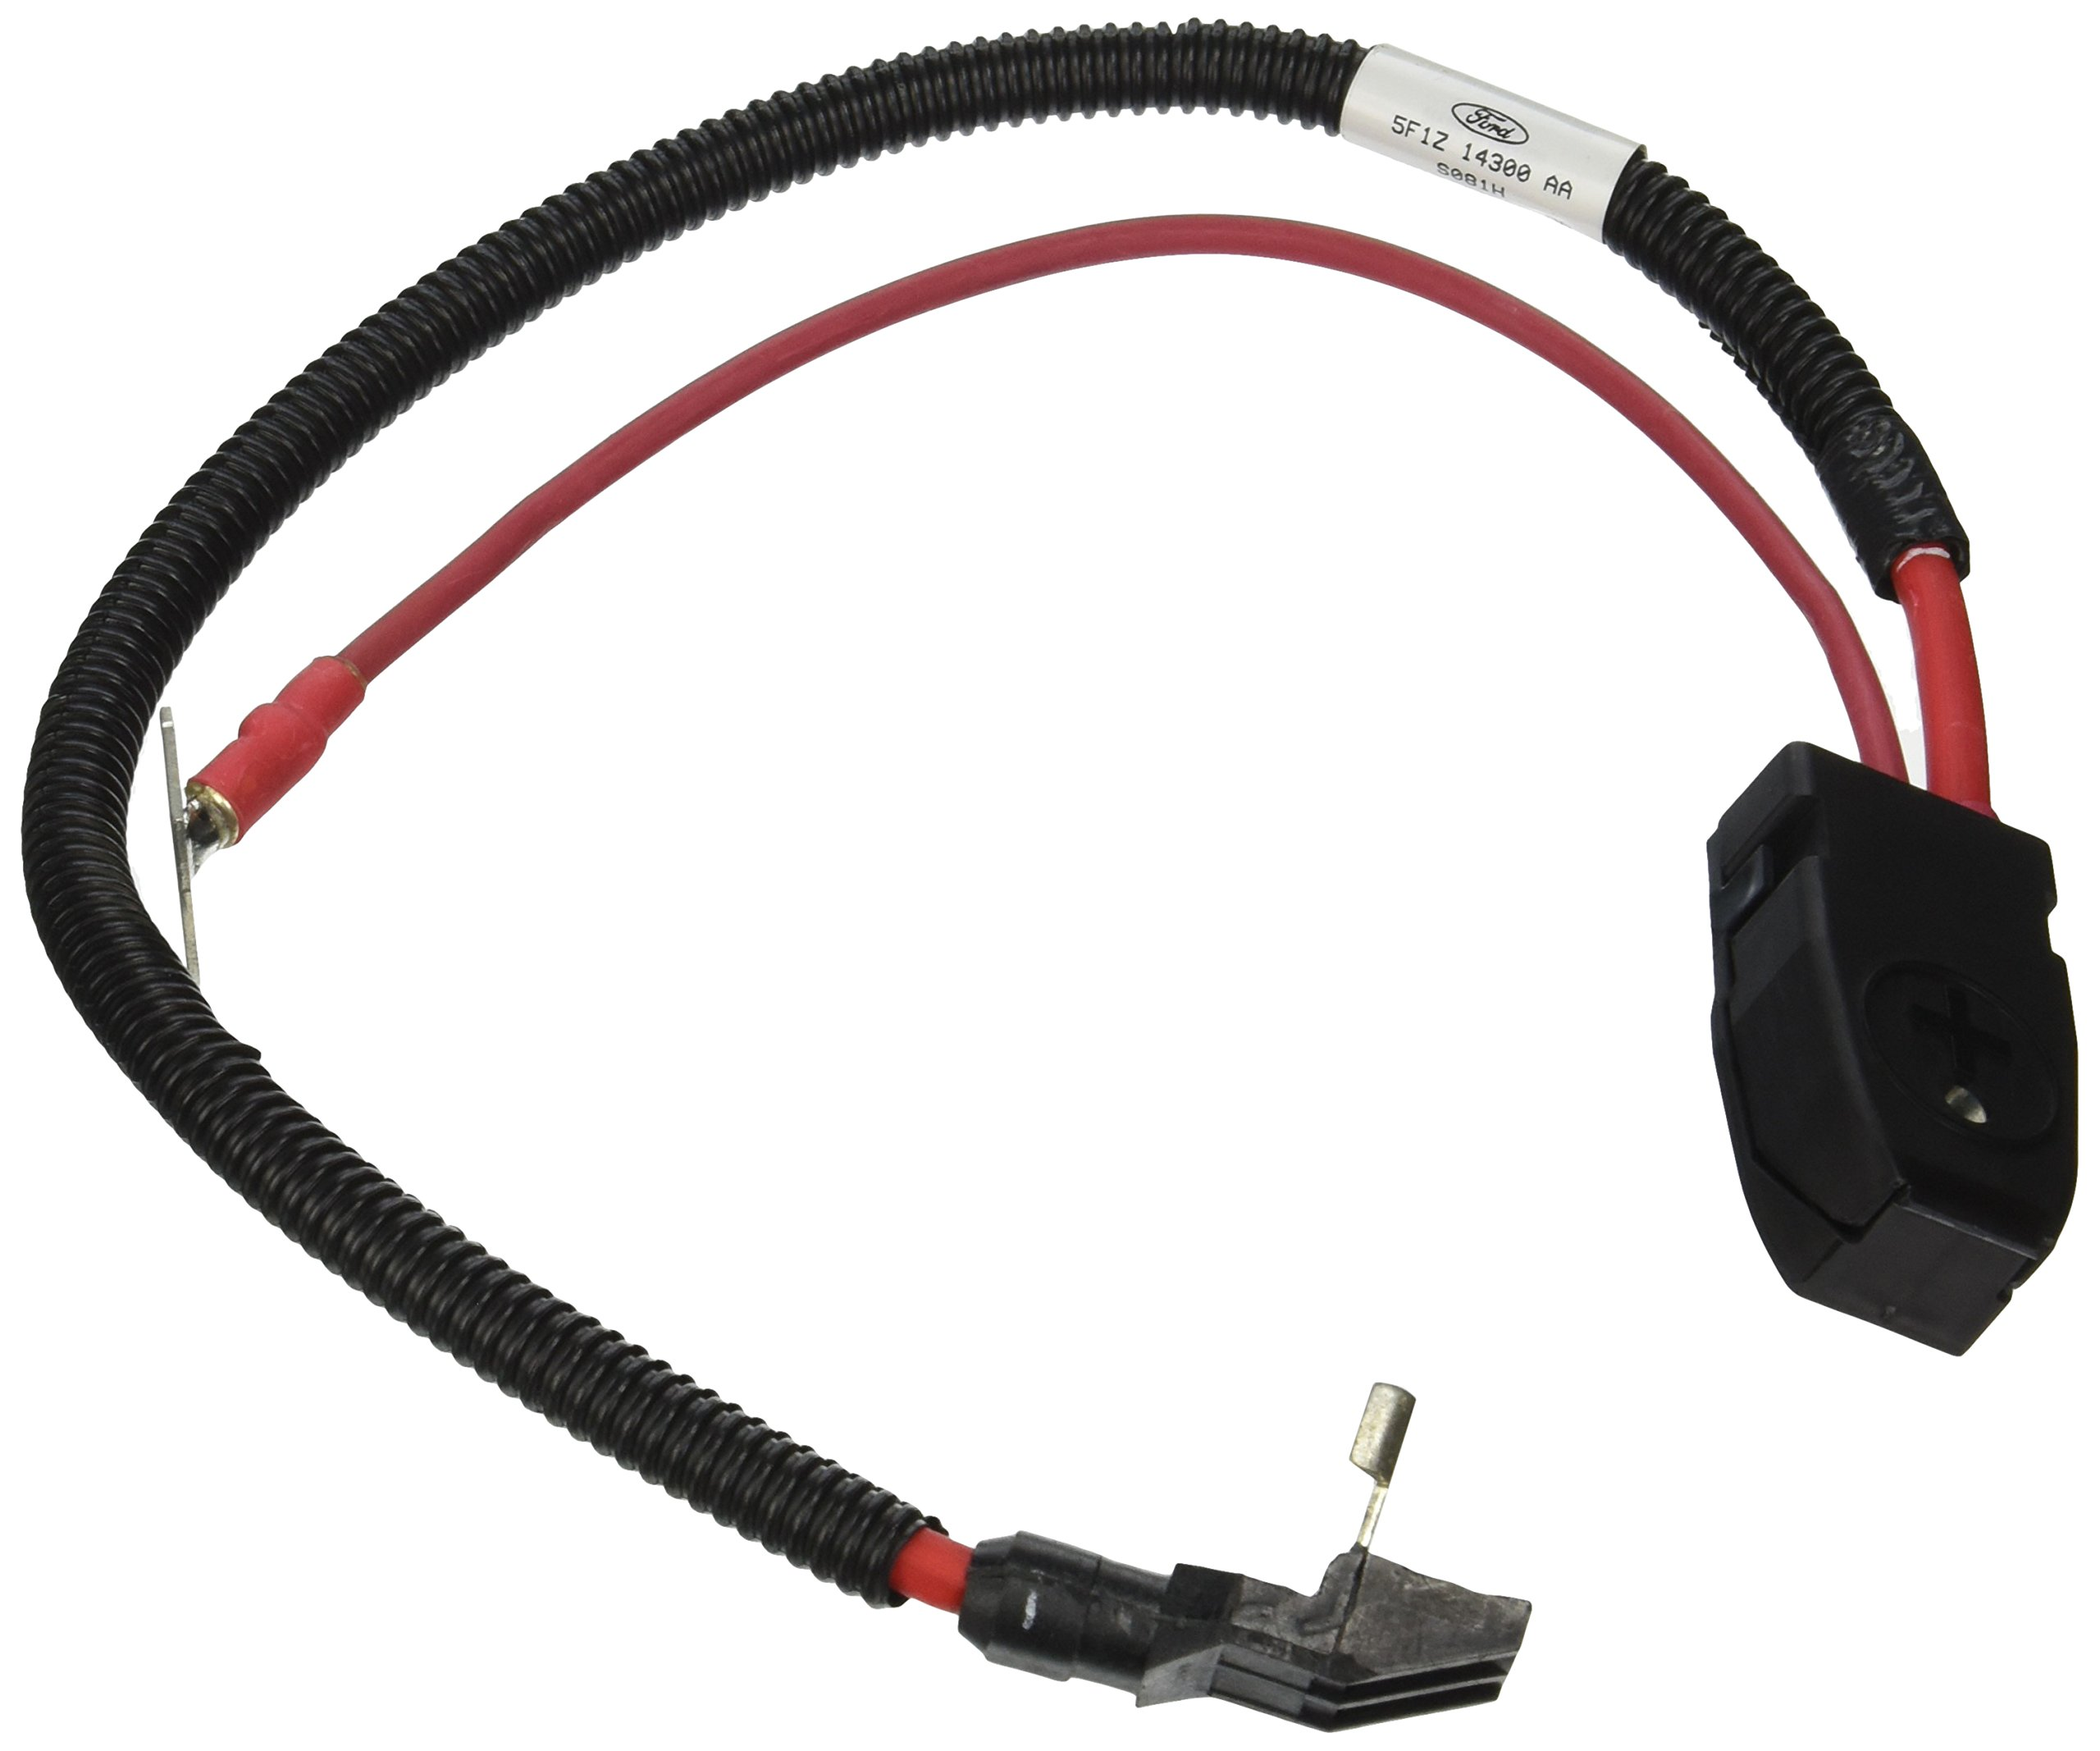 Motorcraft WC95948 Junction to Starter Cable by Motorcraft